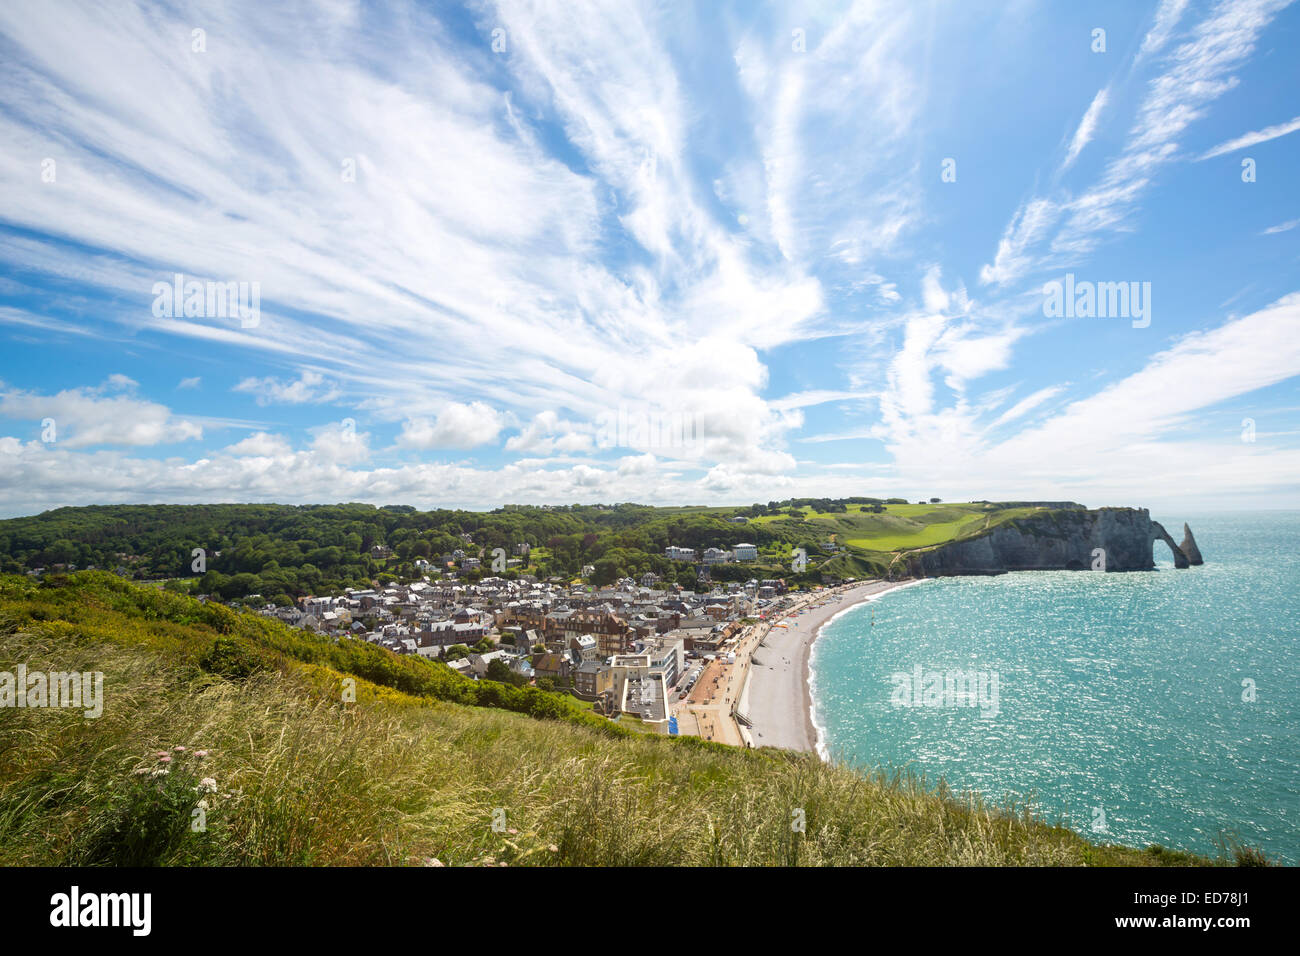 Etretat village, its bay beach and Aval cliff landmark. Aerial view. Normandy, France - Stock Image